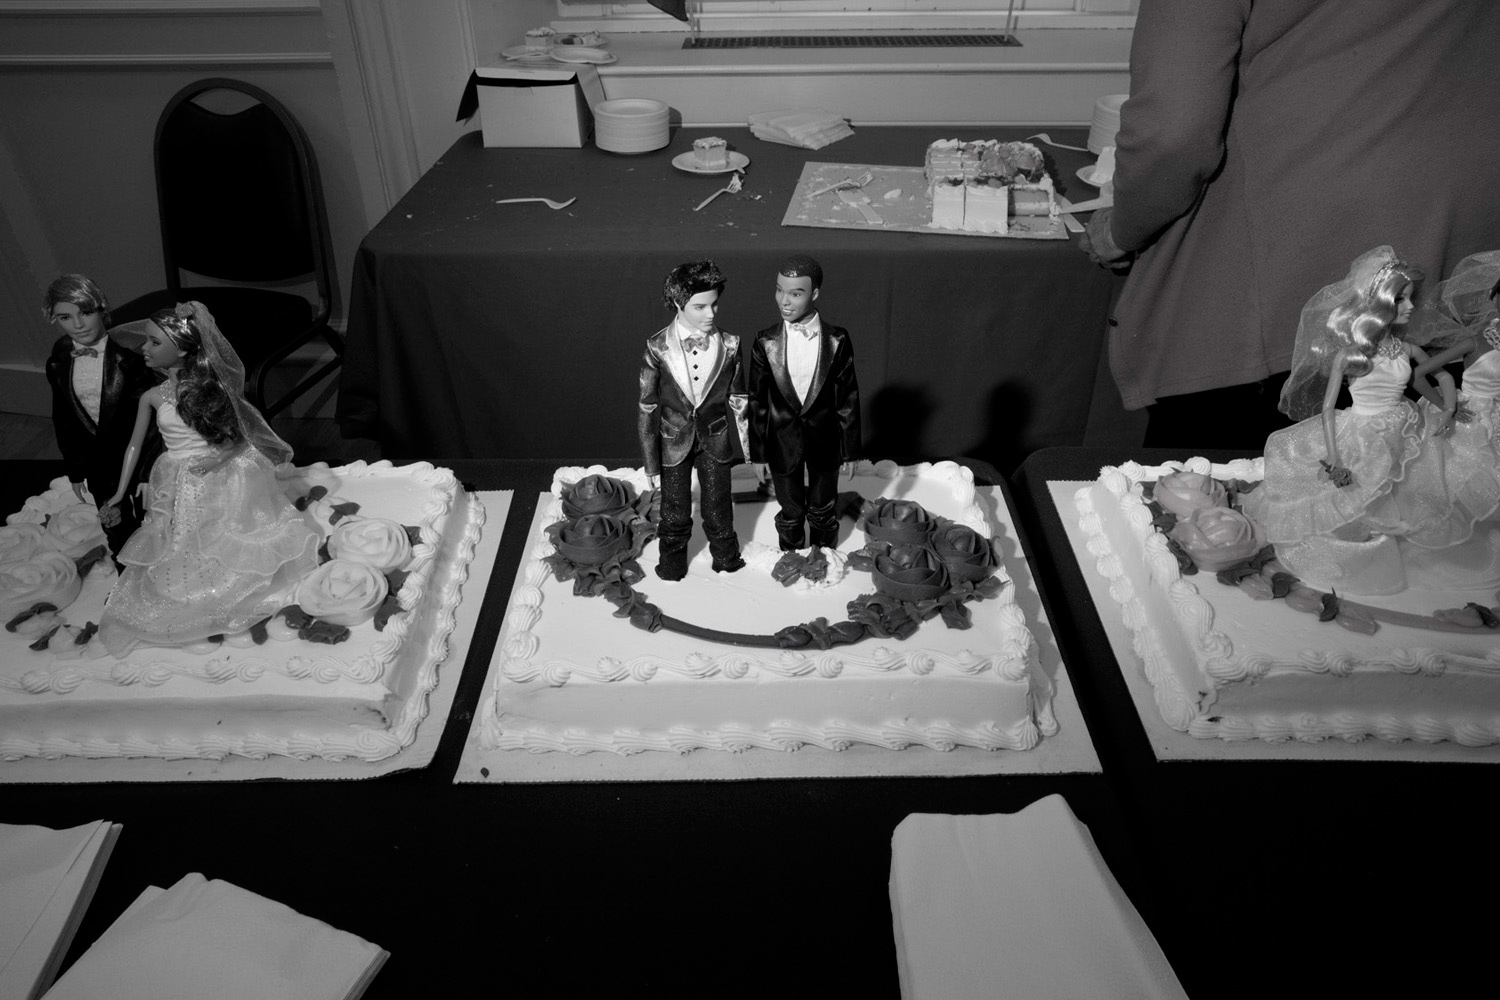 July 23, 2011. Wedding cake at Brooklyn Borough Hall on the first day Gay Marriage became legal in New York.